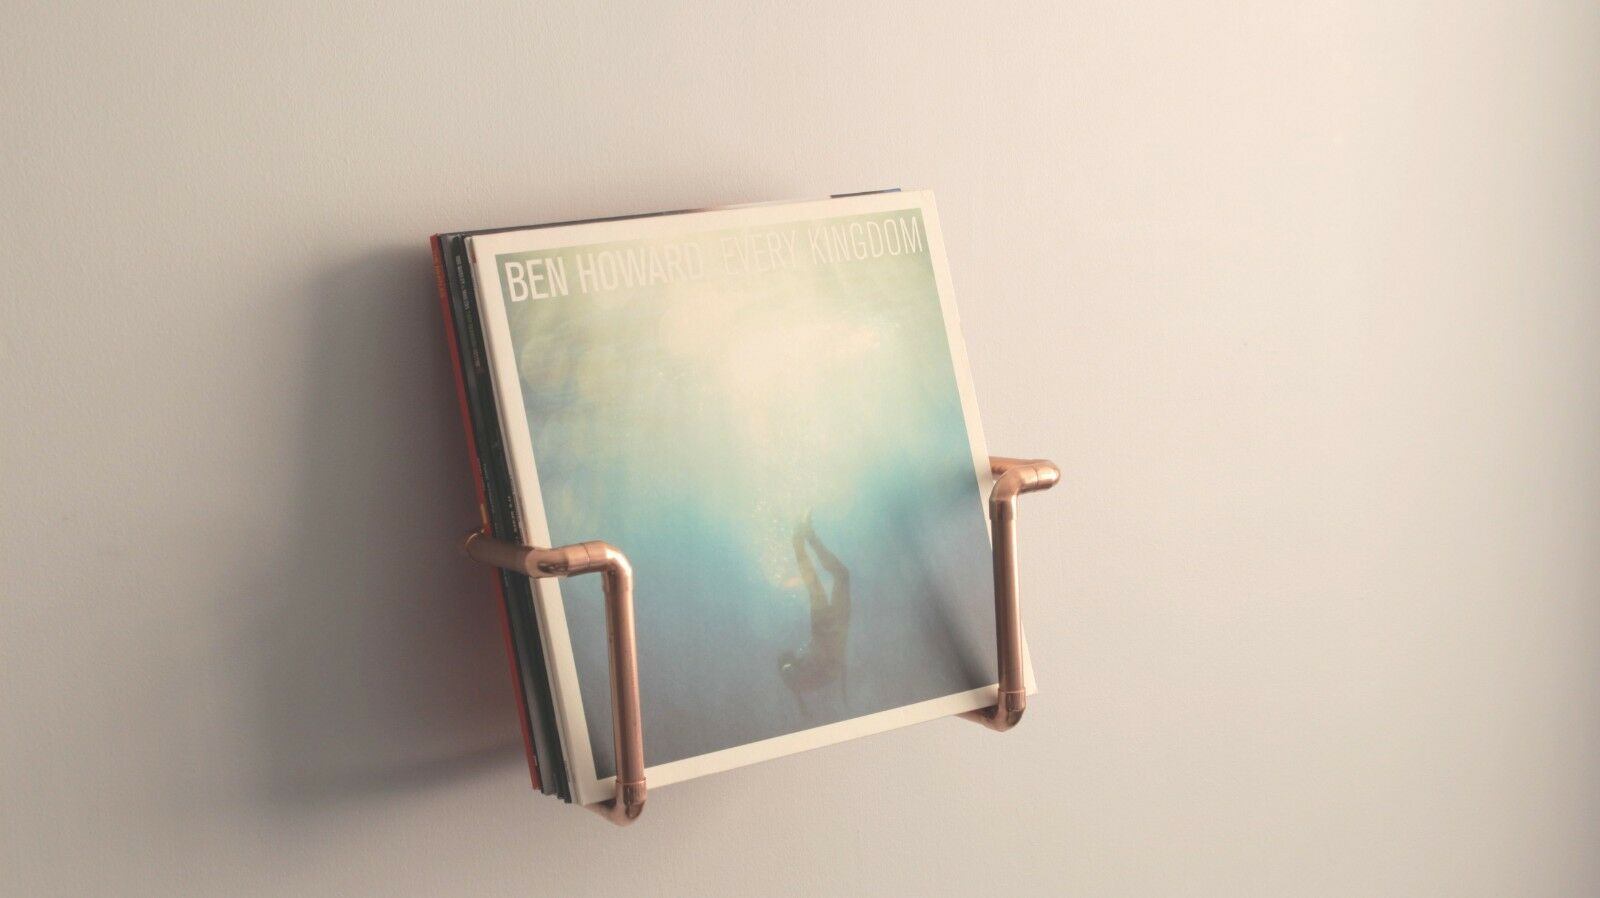 Wall mounted vinyl record holder - - - Handmade with industrial copper pipe and iron 966c62